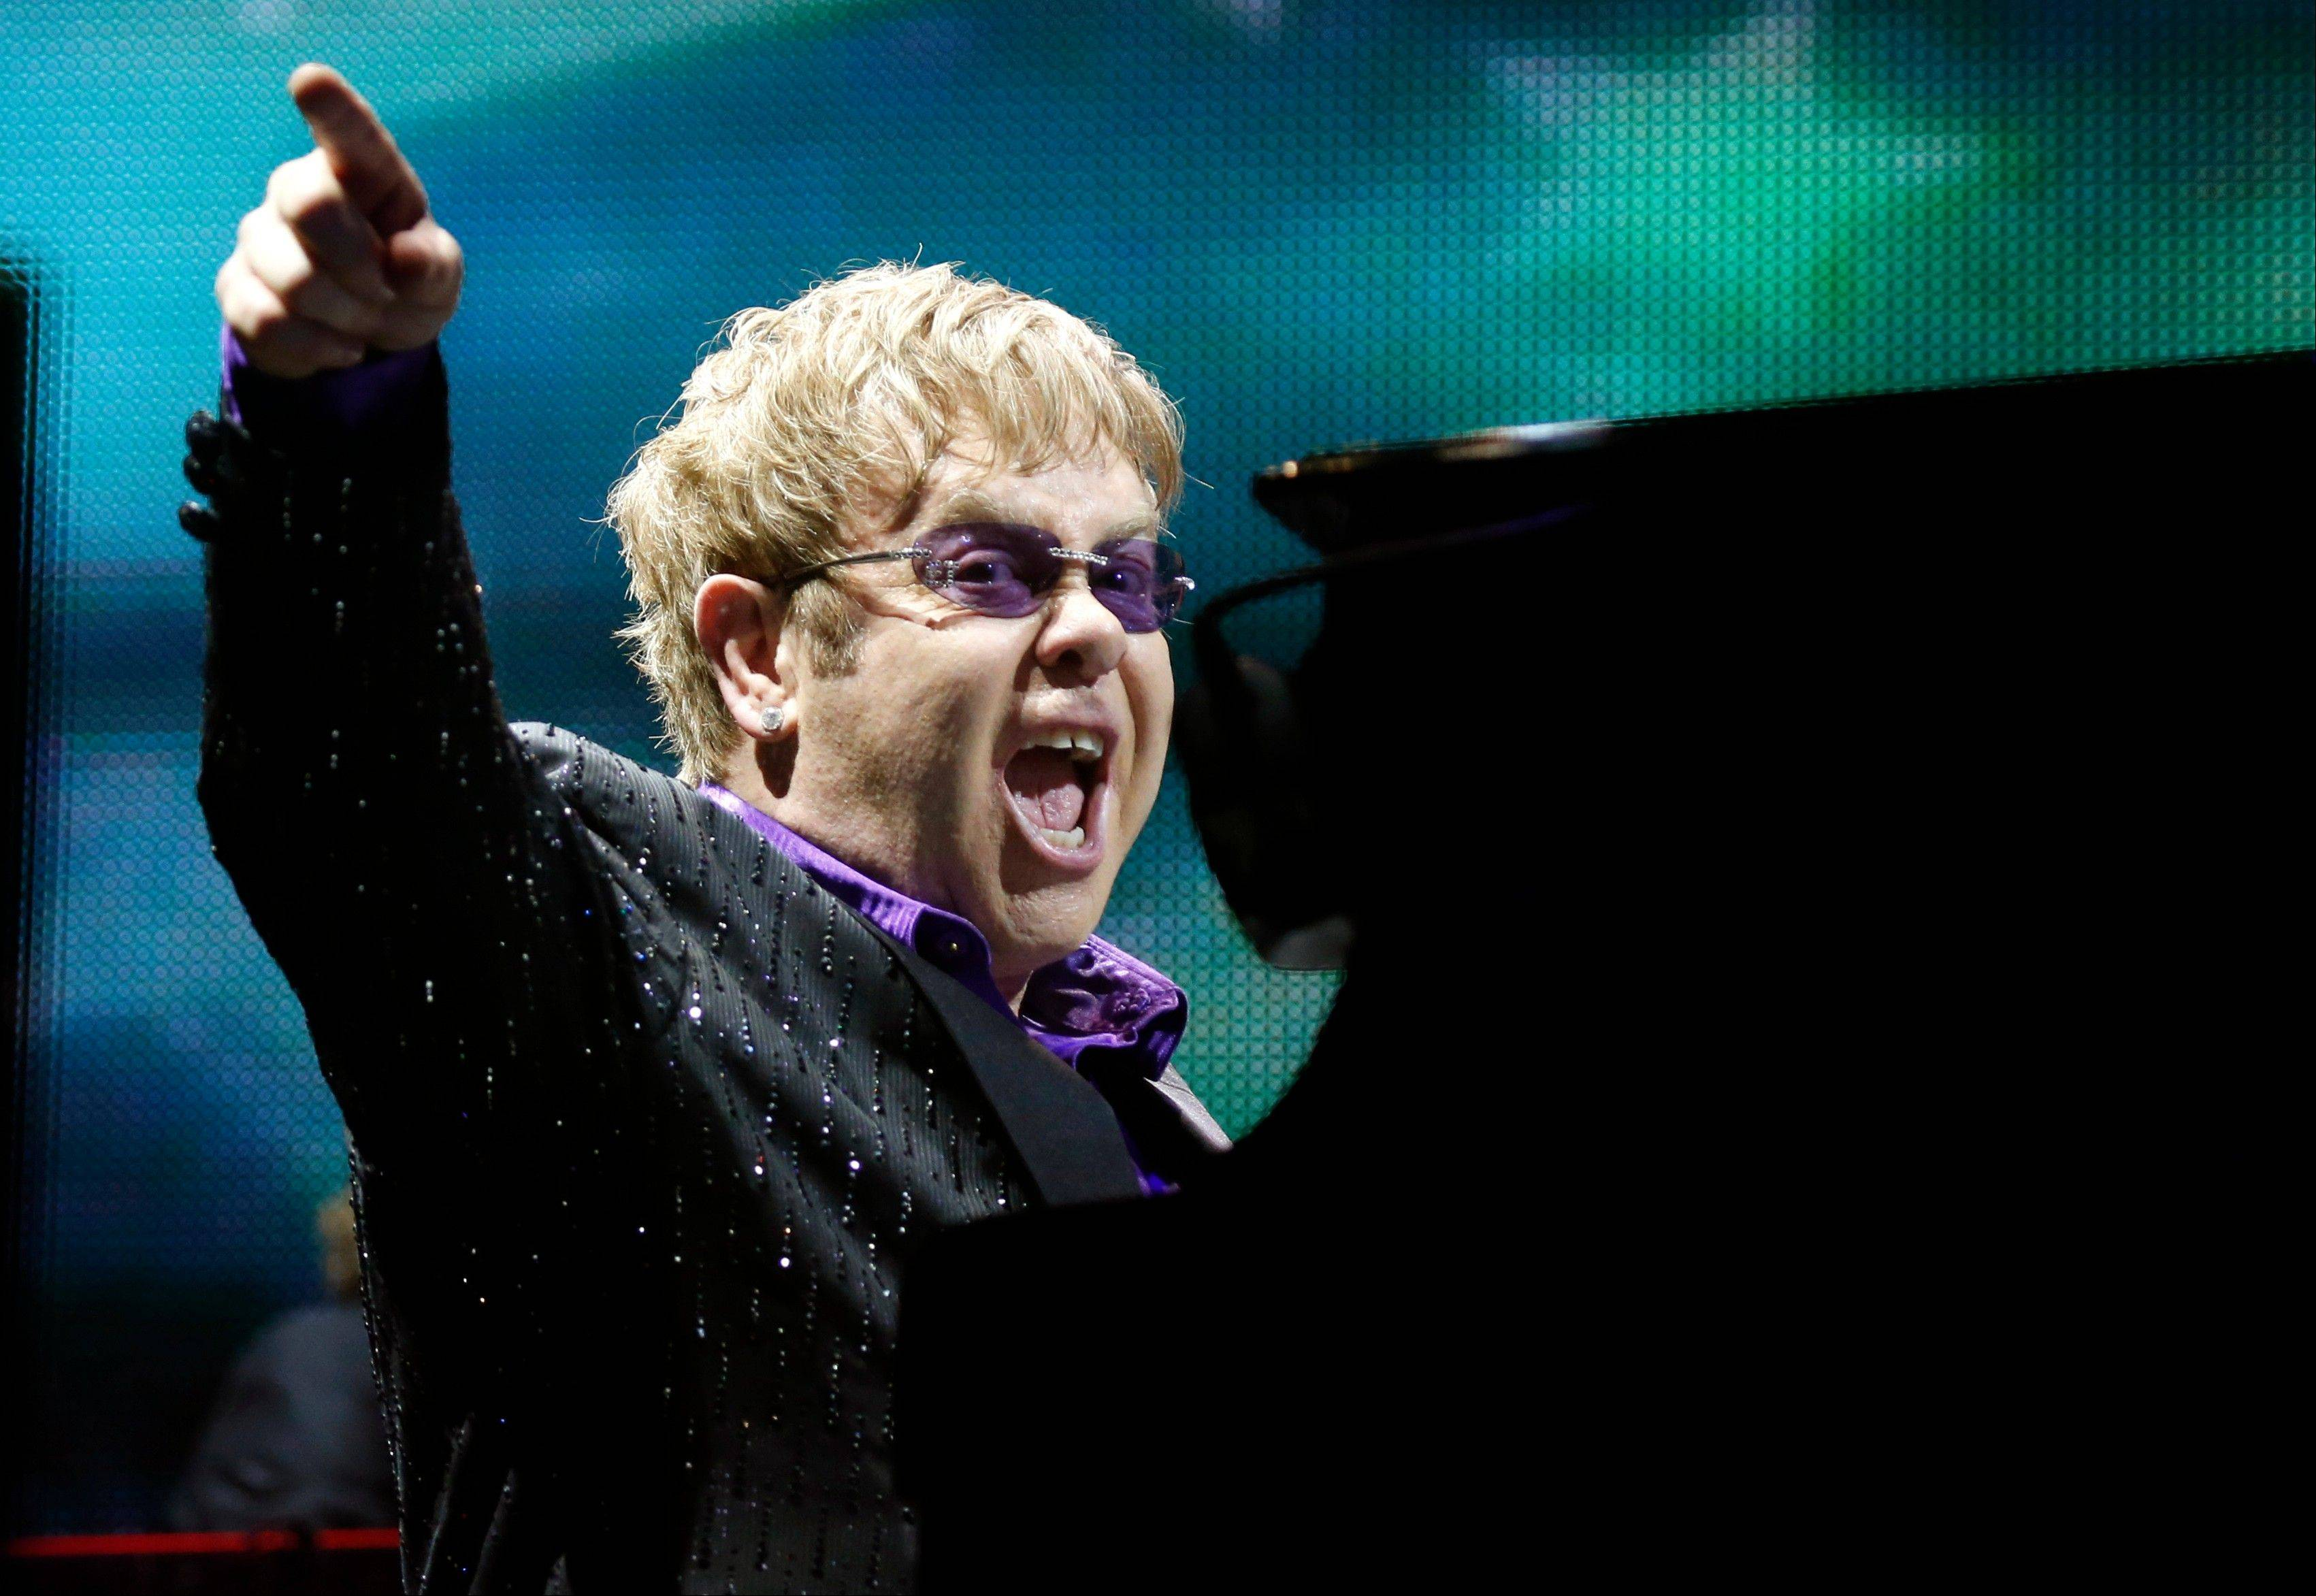 Elton John performs at the Allstate Arena in Rosemont on Saturday, Nov. 30.